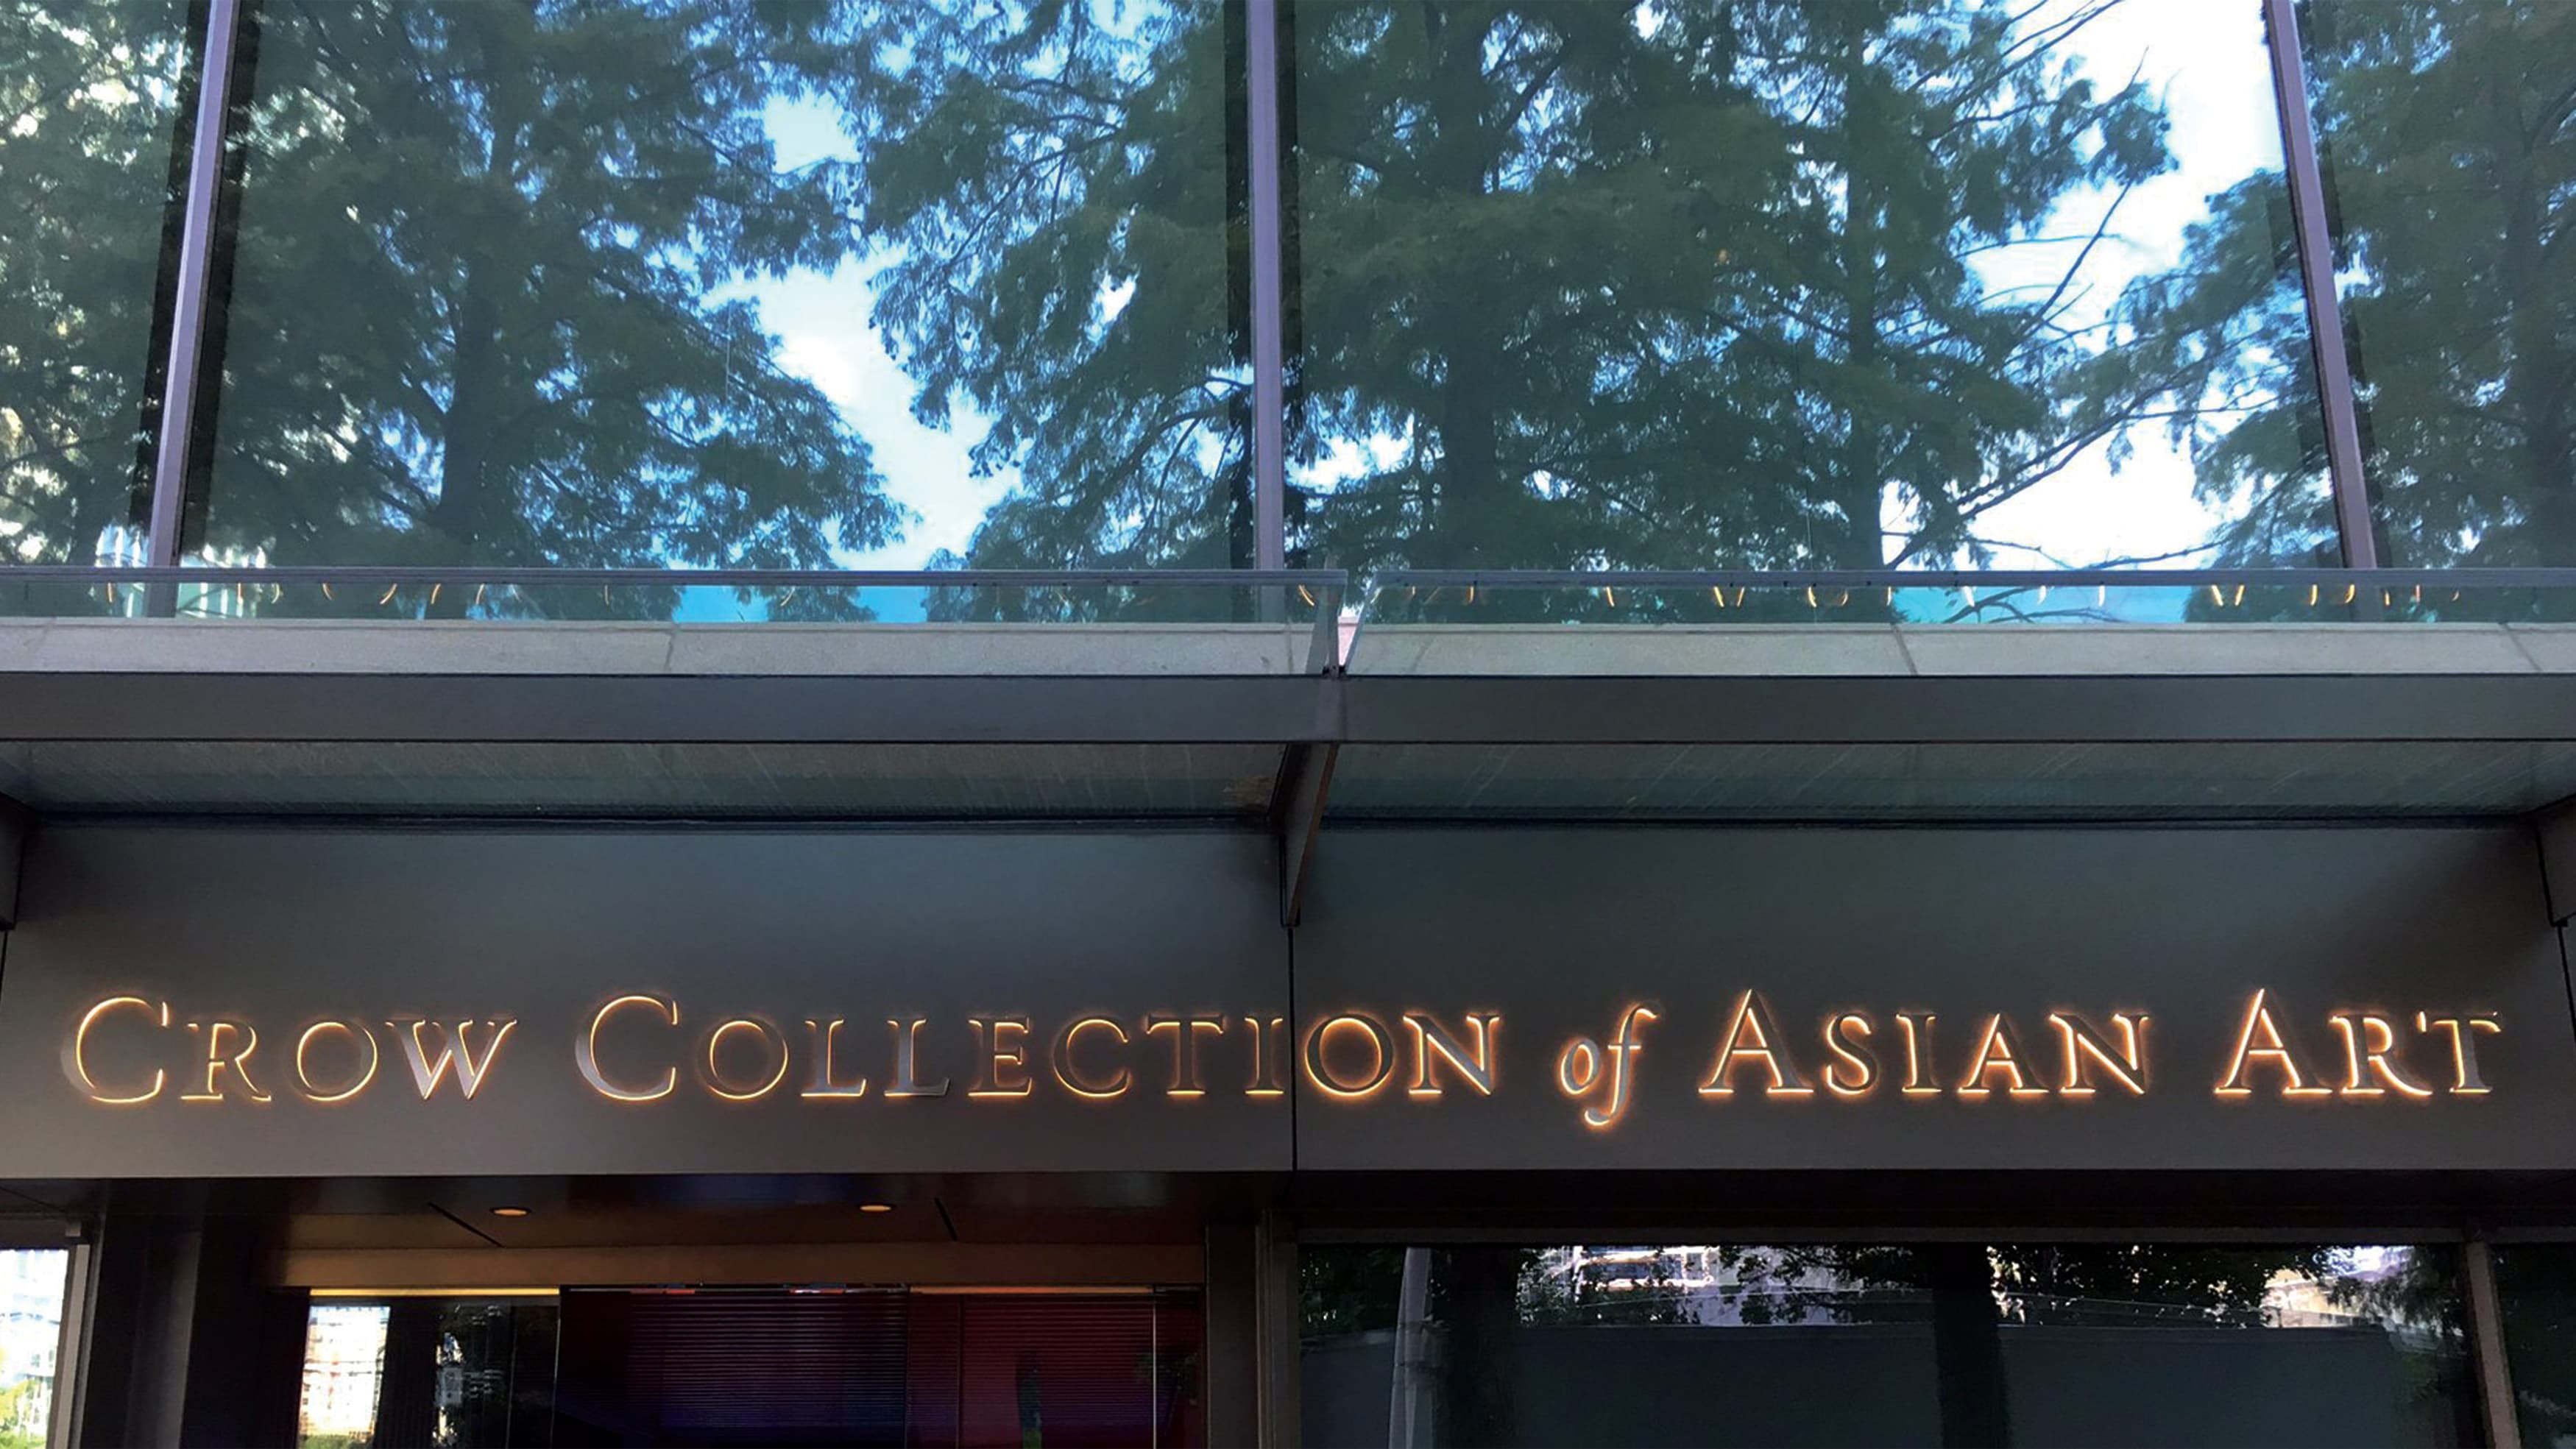 The Crow Collection of Asian Art New Exterior Signage